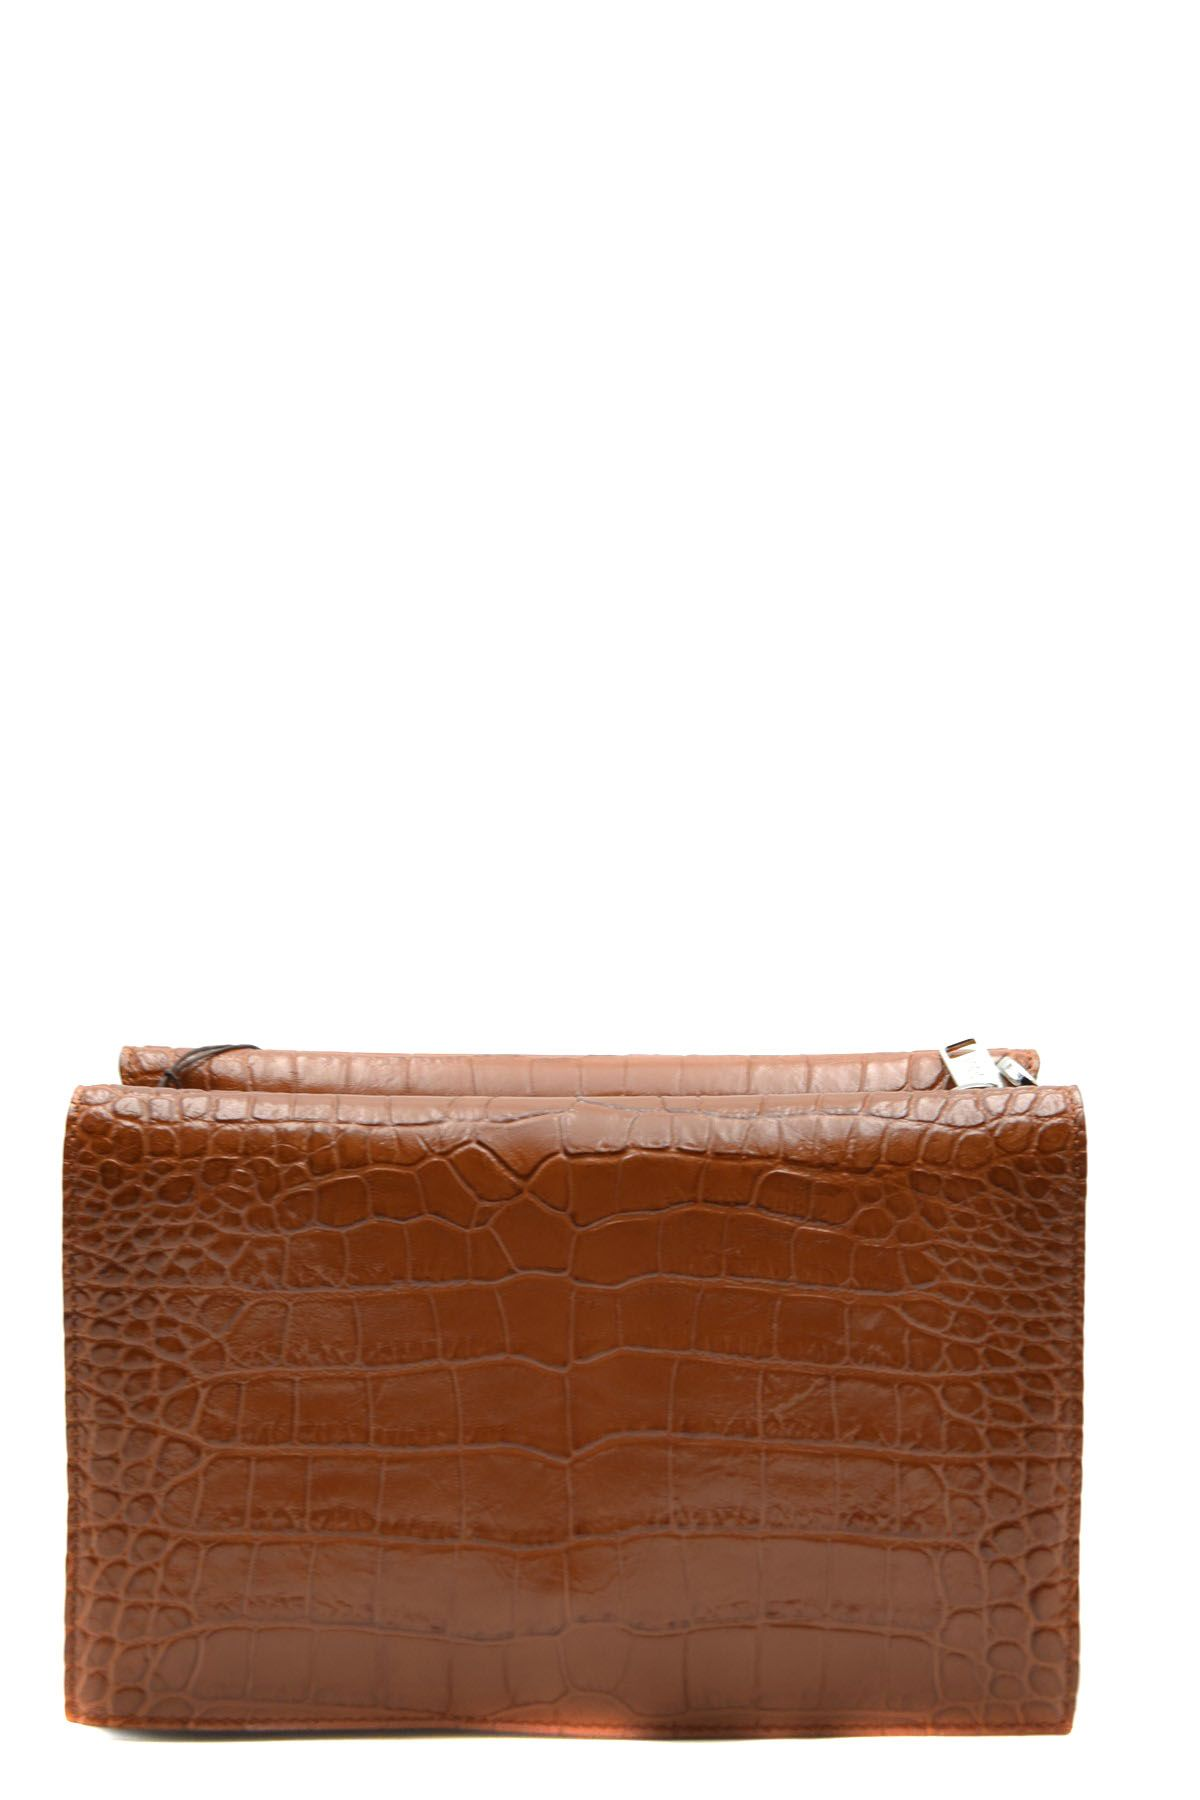 Tod's TOD'S WOMEN'S BROWN LEATHER SHOULDER BAG